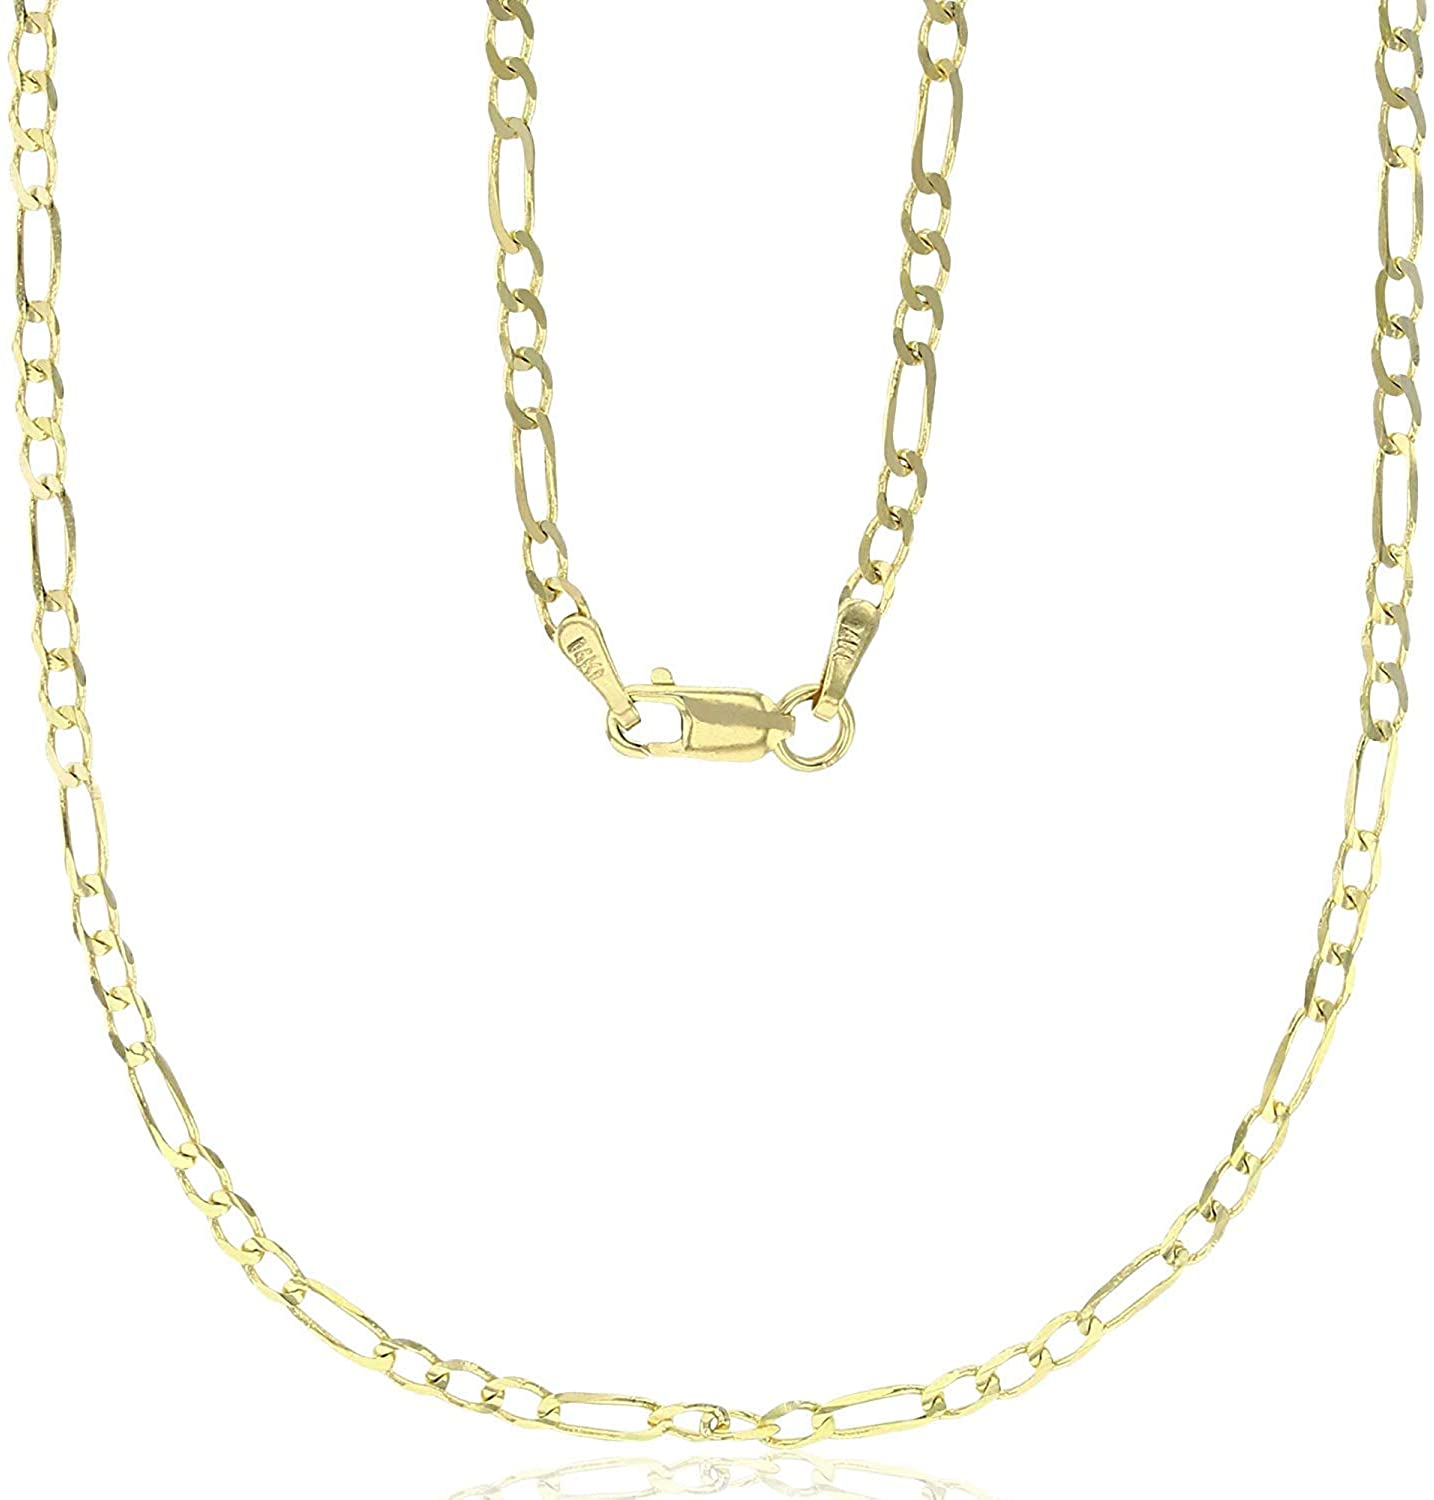 14K Yellow Gold Solid 2mm-12mm Figaro Chain with Lobster Claw Clasp | Italian Gold Chain | Gold Figaro Chain for Men and Women